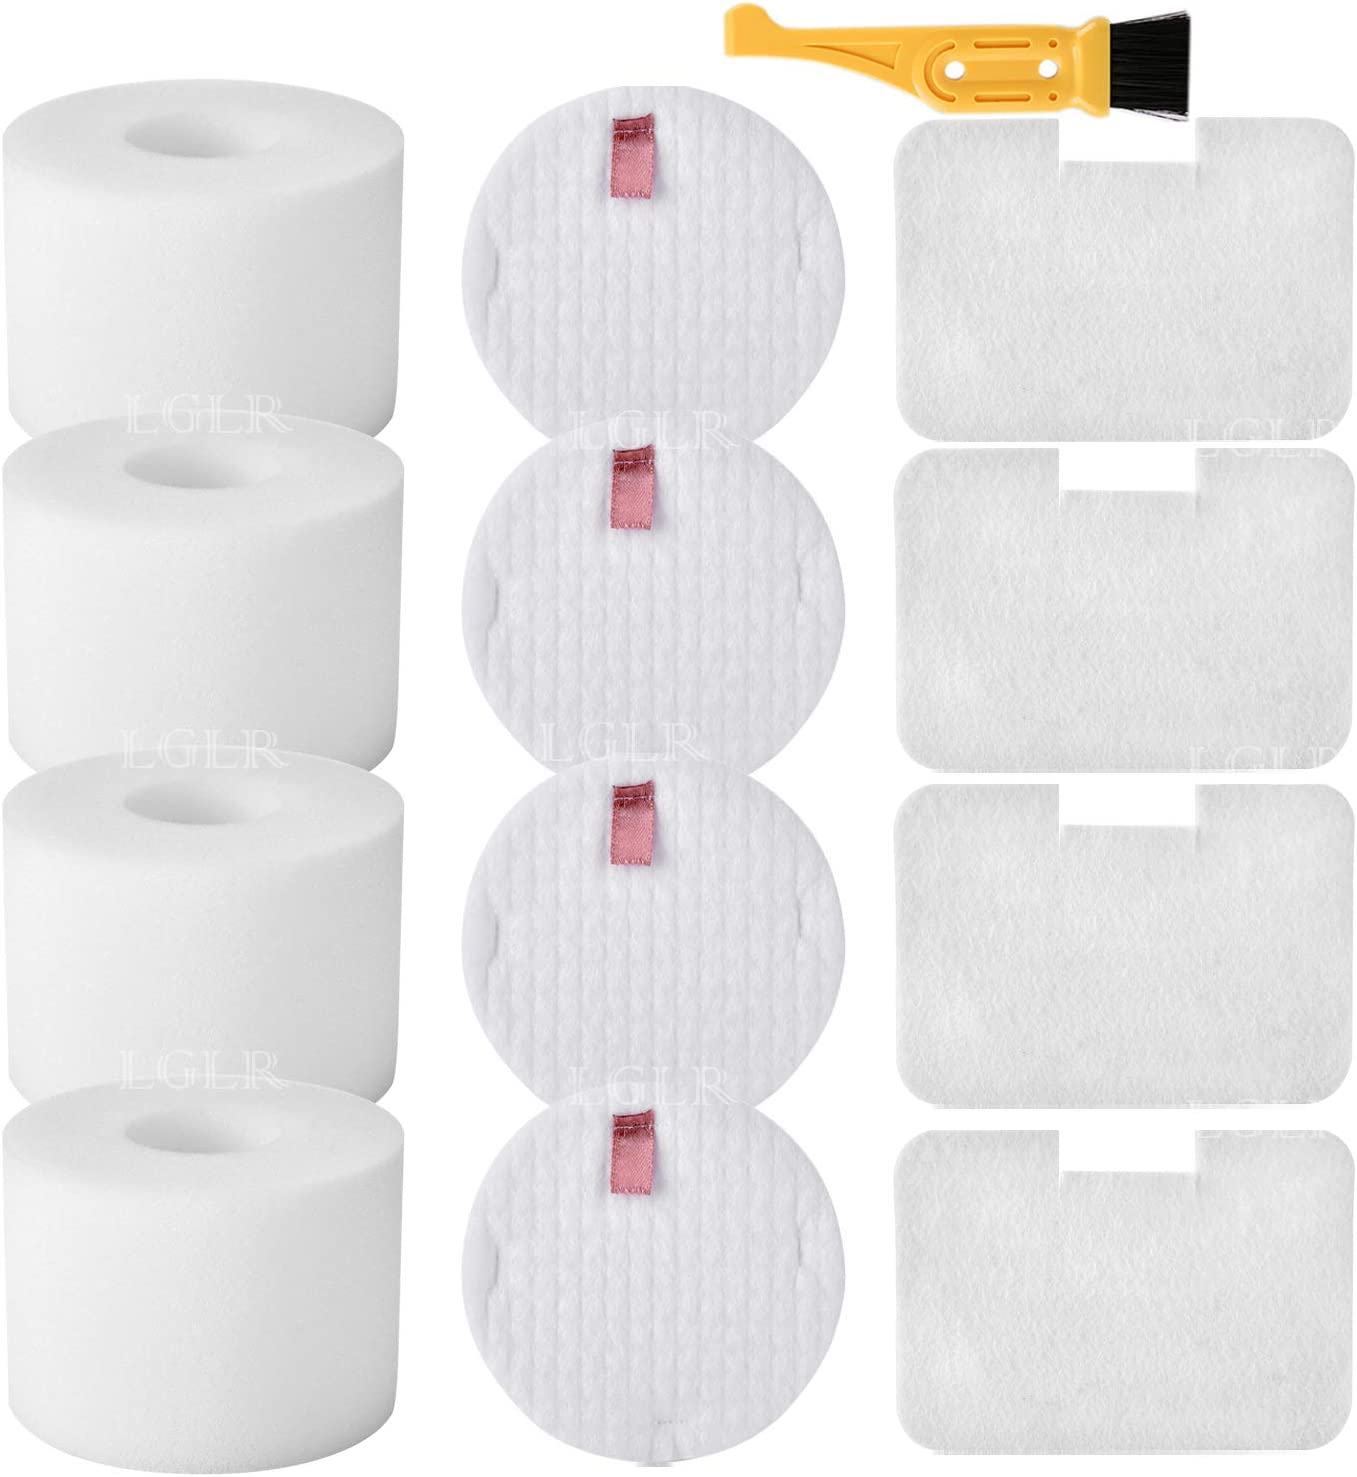 LGLR 4 Pack Replacement Vacuum Filters for Shark Navigator Deluxe Upright Vacuum NV42, NV44, NV46, UV402 UV410, Replace Part # XFF36